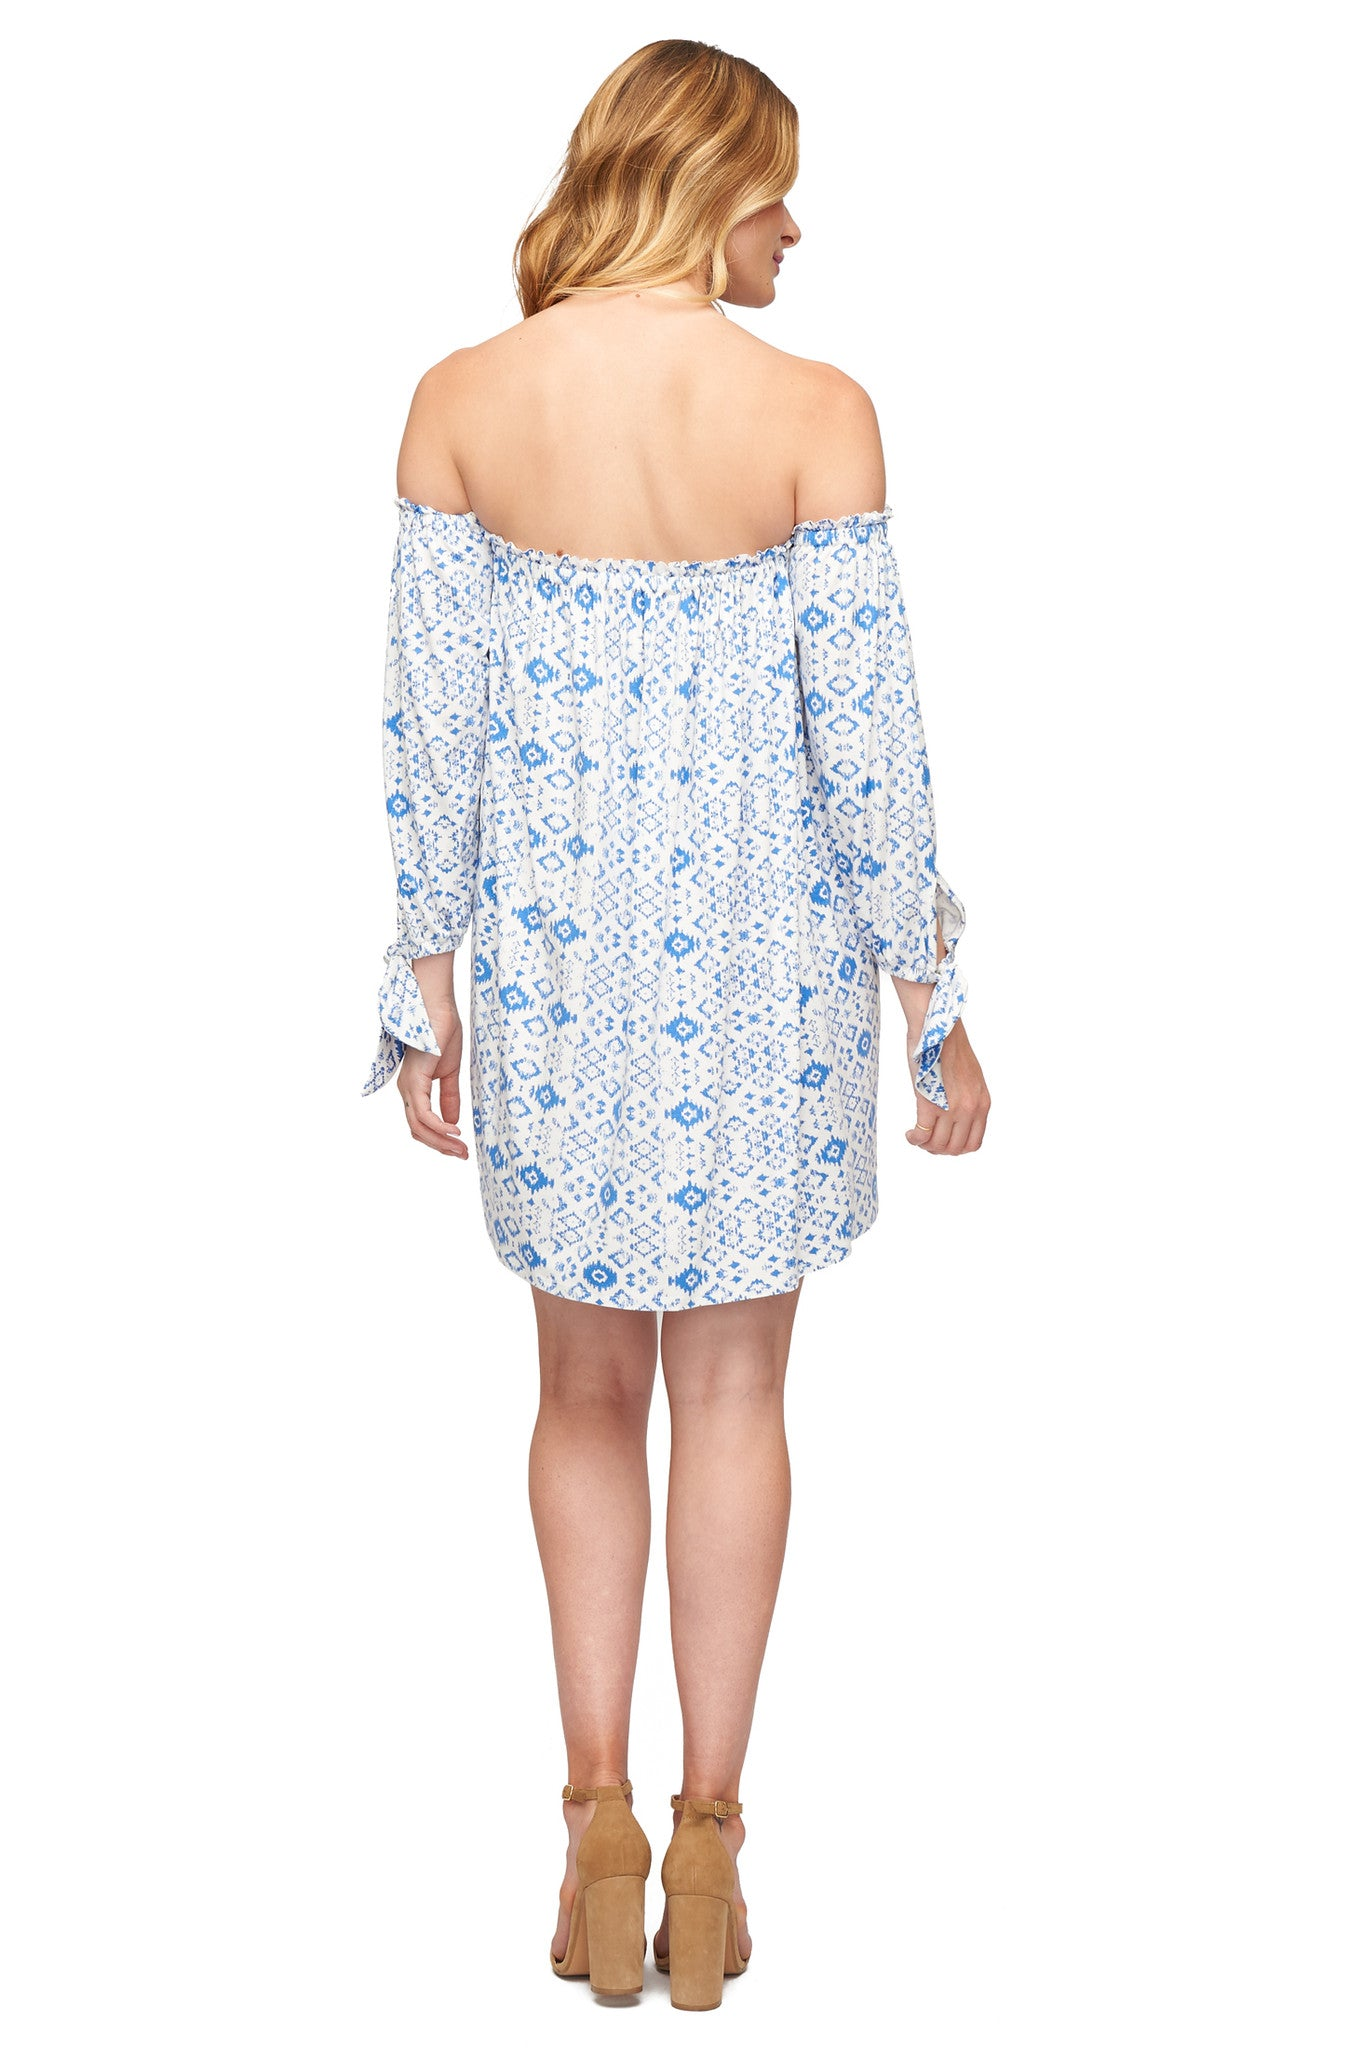 Trice Dress Print - Delta Medallion